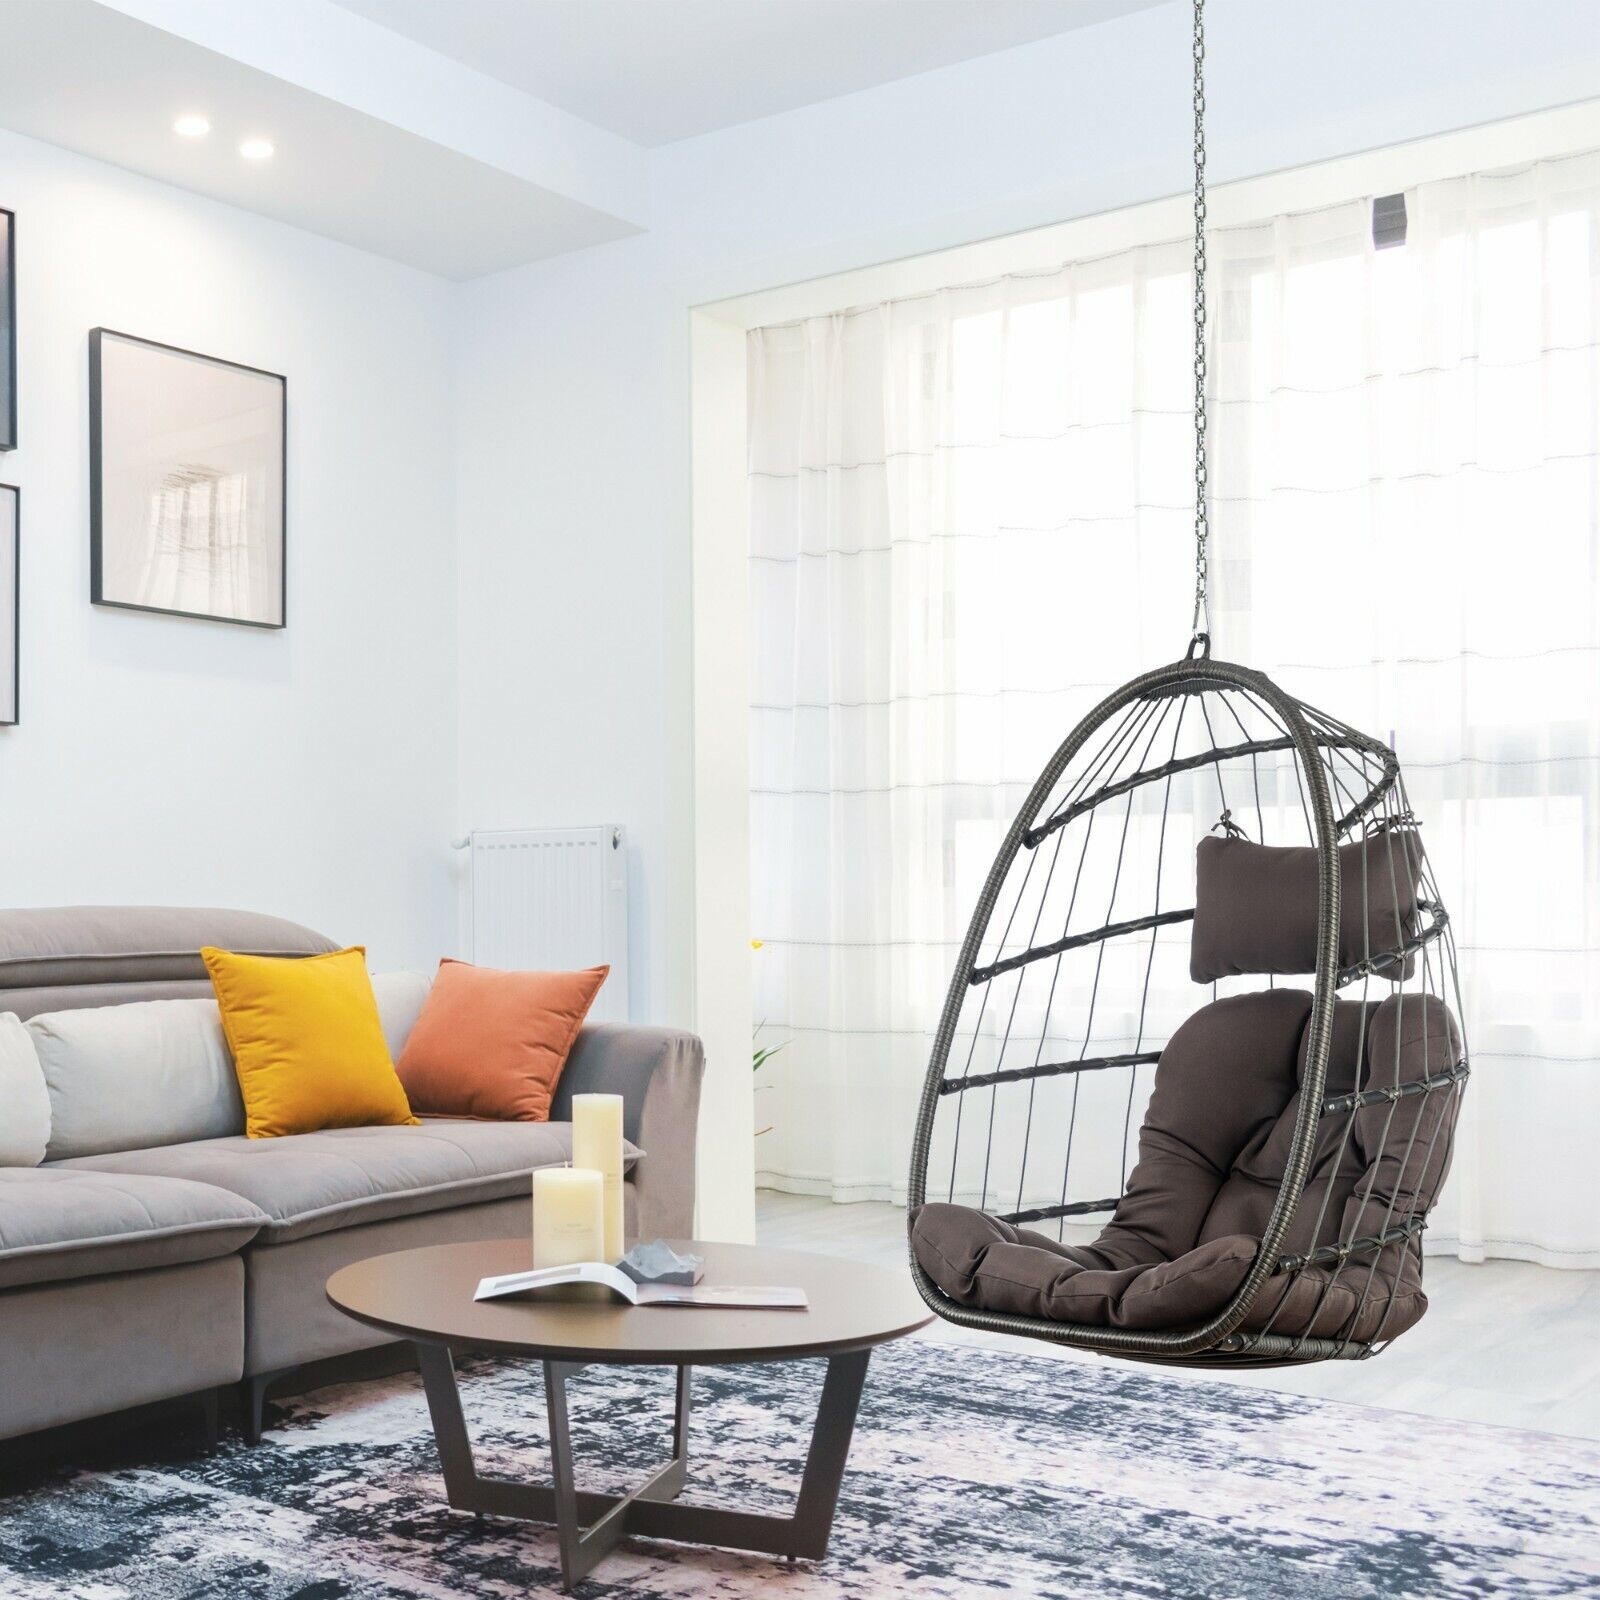 Hammock Egg Chair with Hanging Steel Chain without Stand In